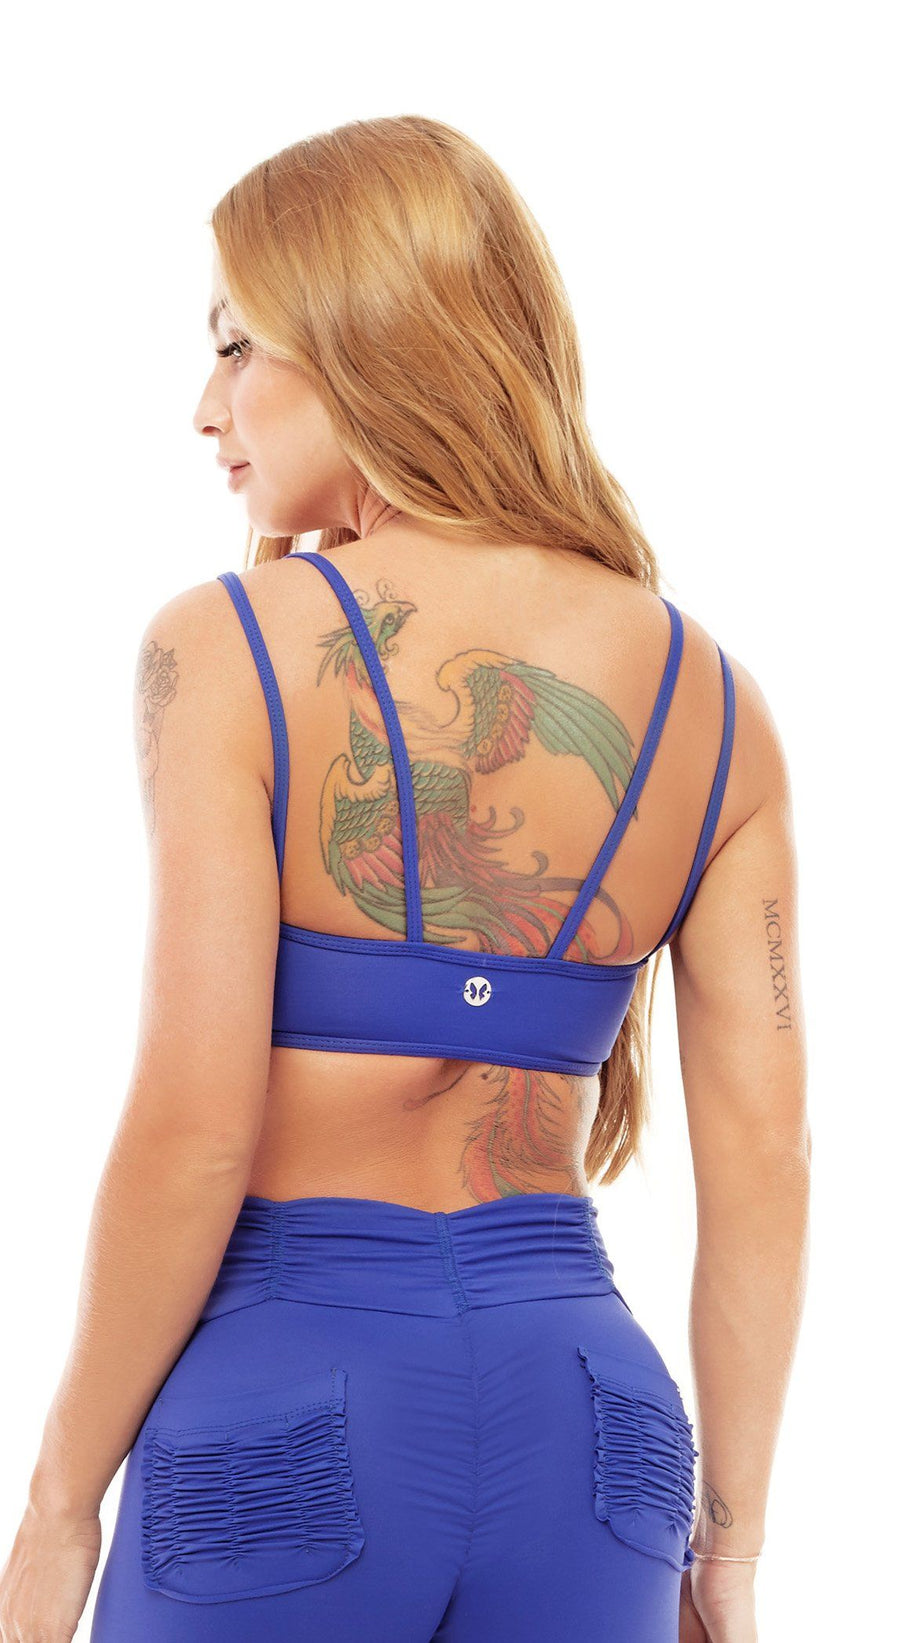 Sports Bra - Top Bra Audacity Blue